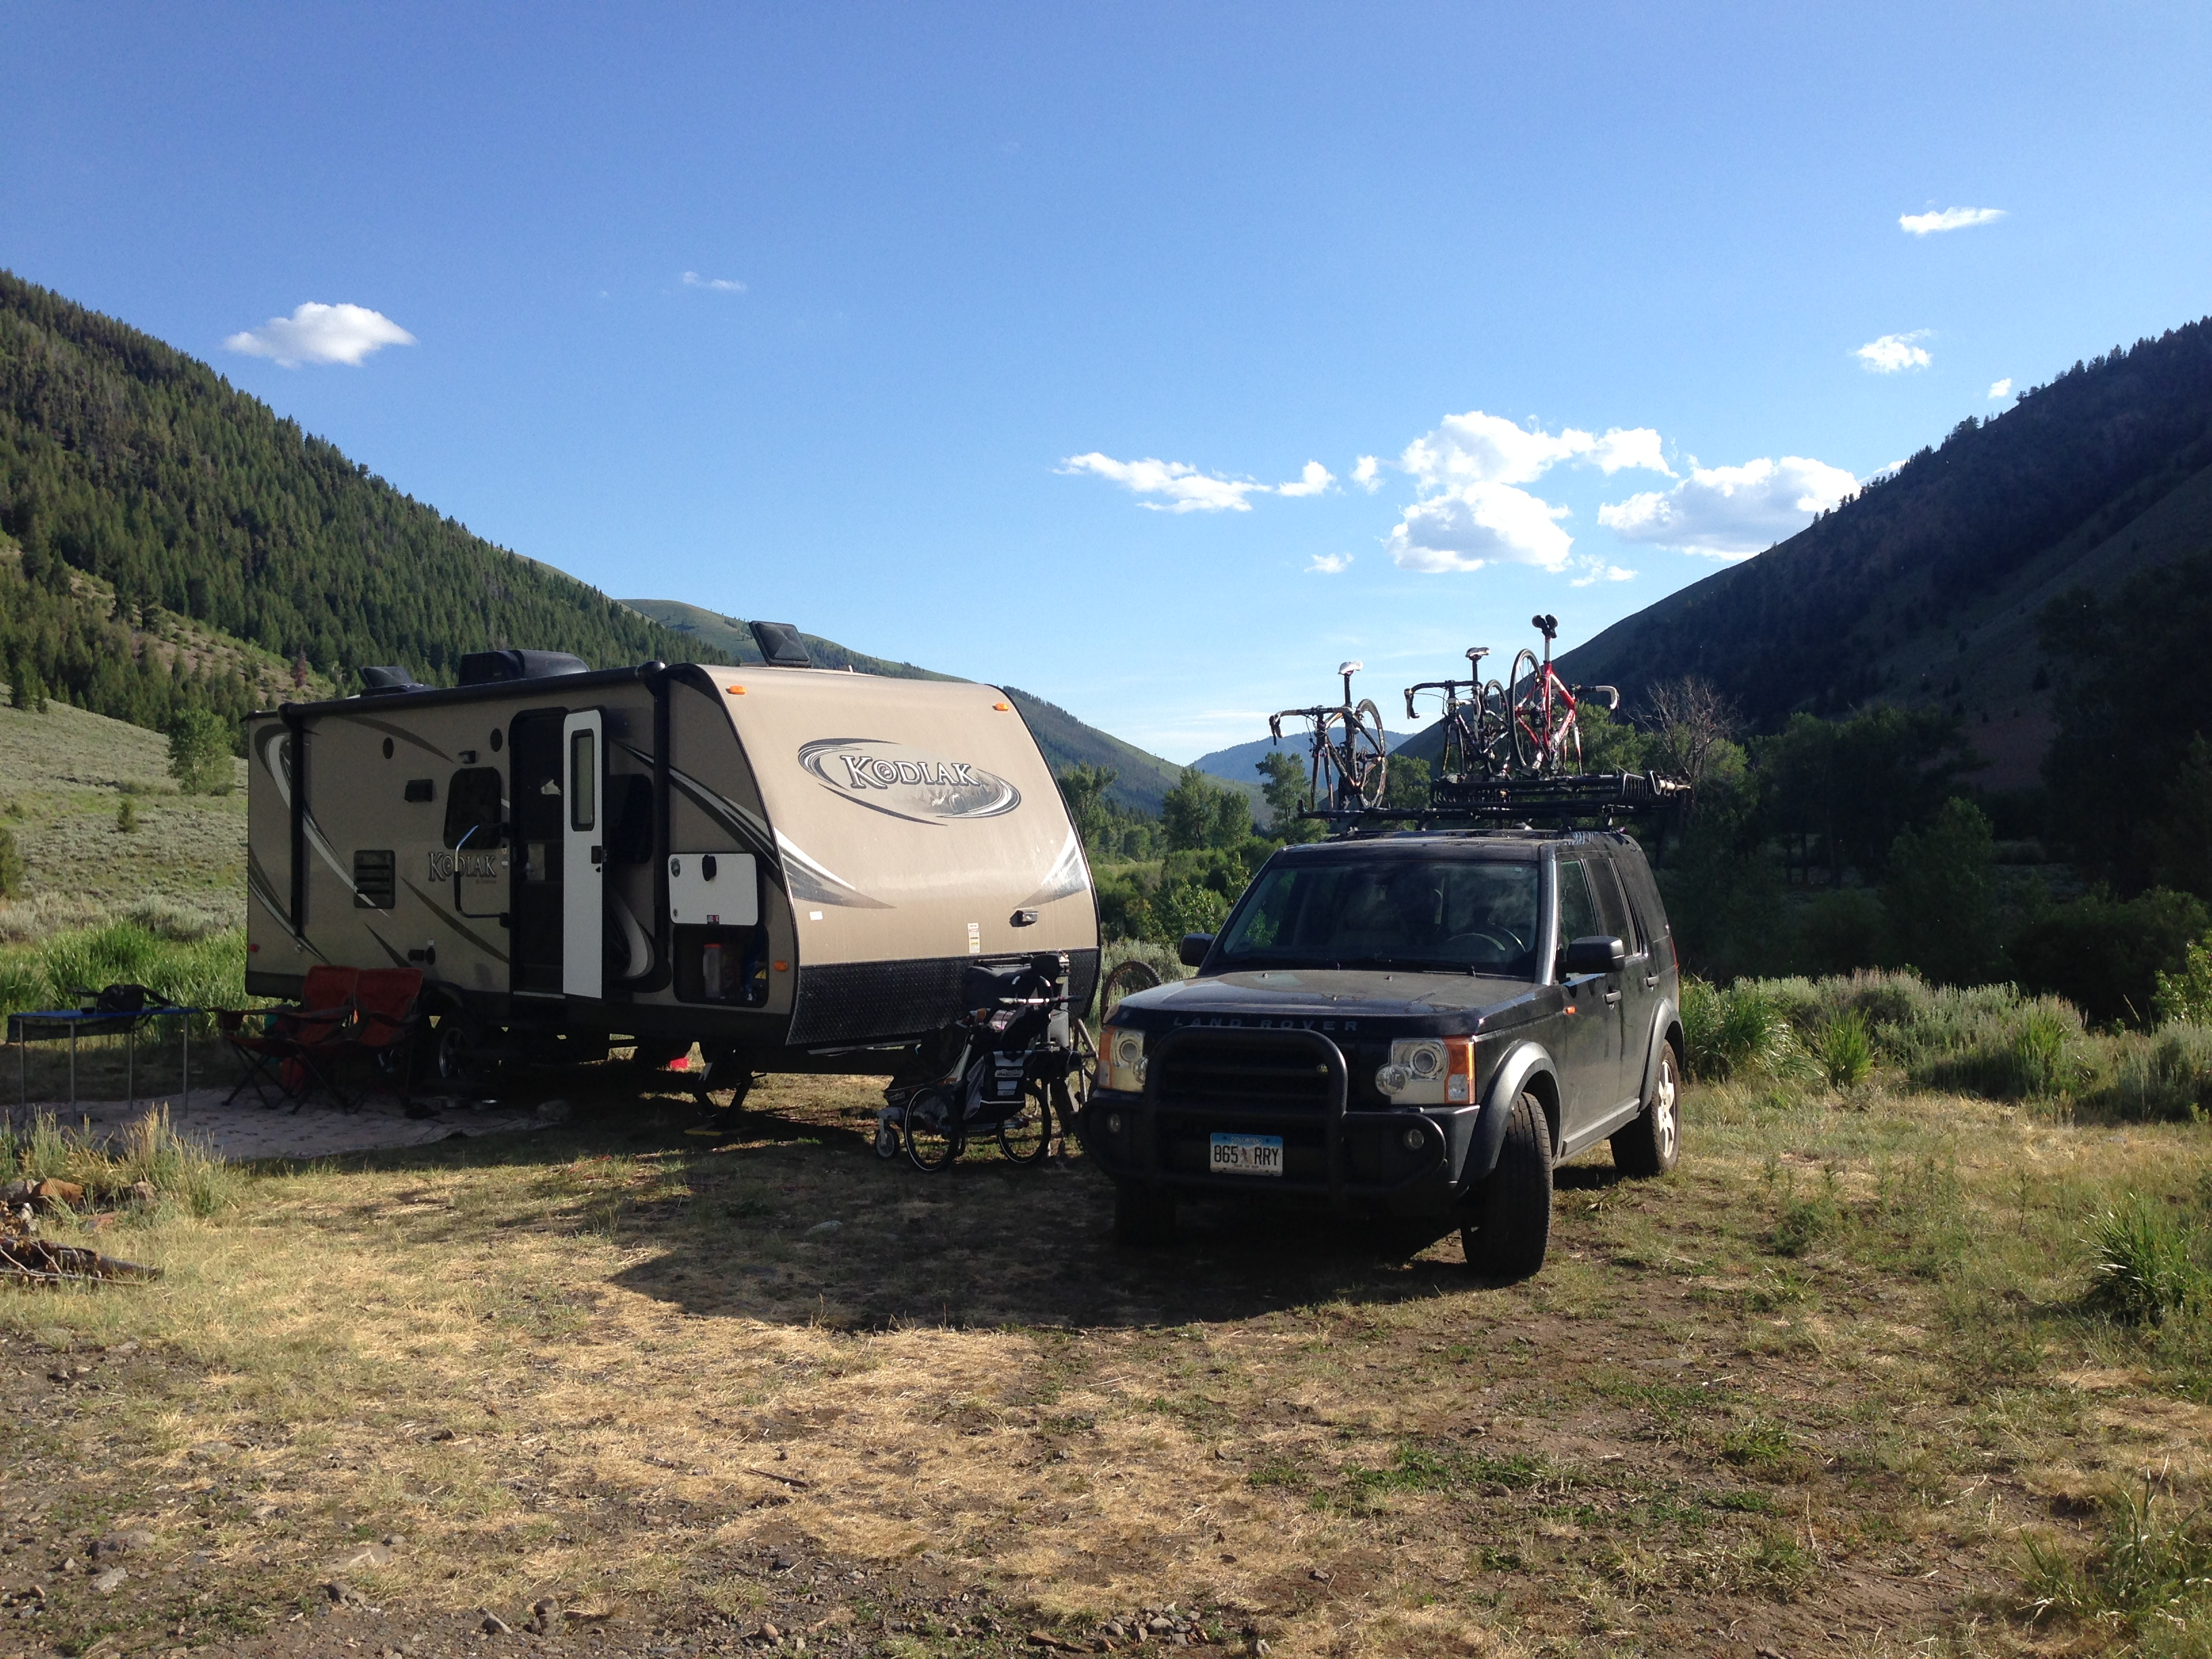 Best of Sun Valley: Camping